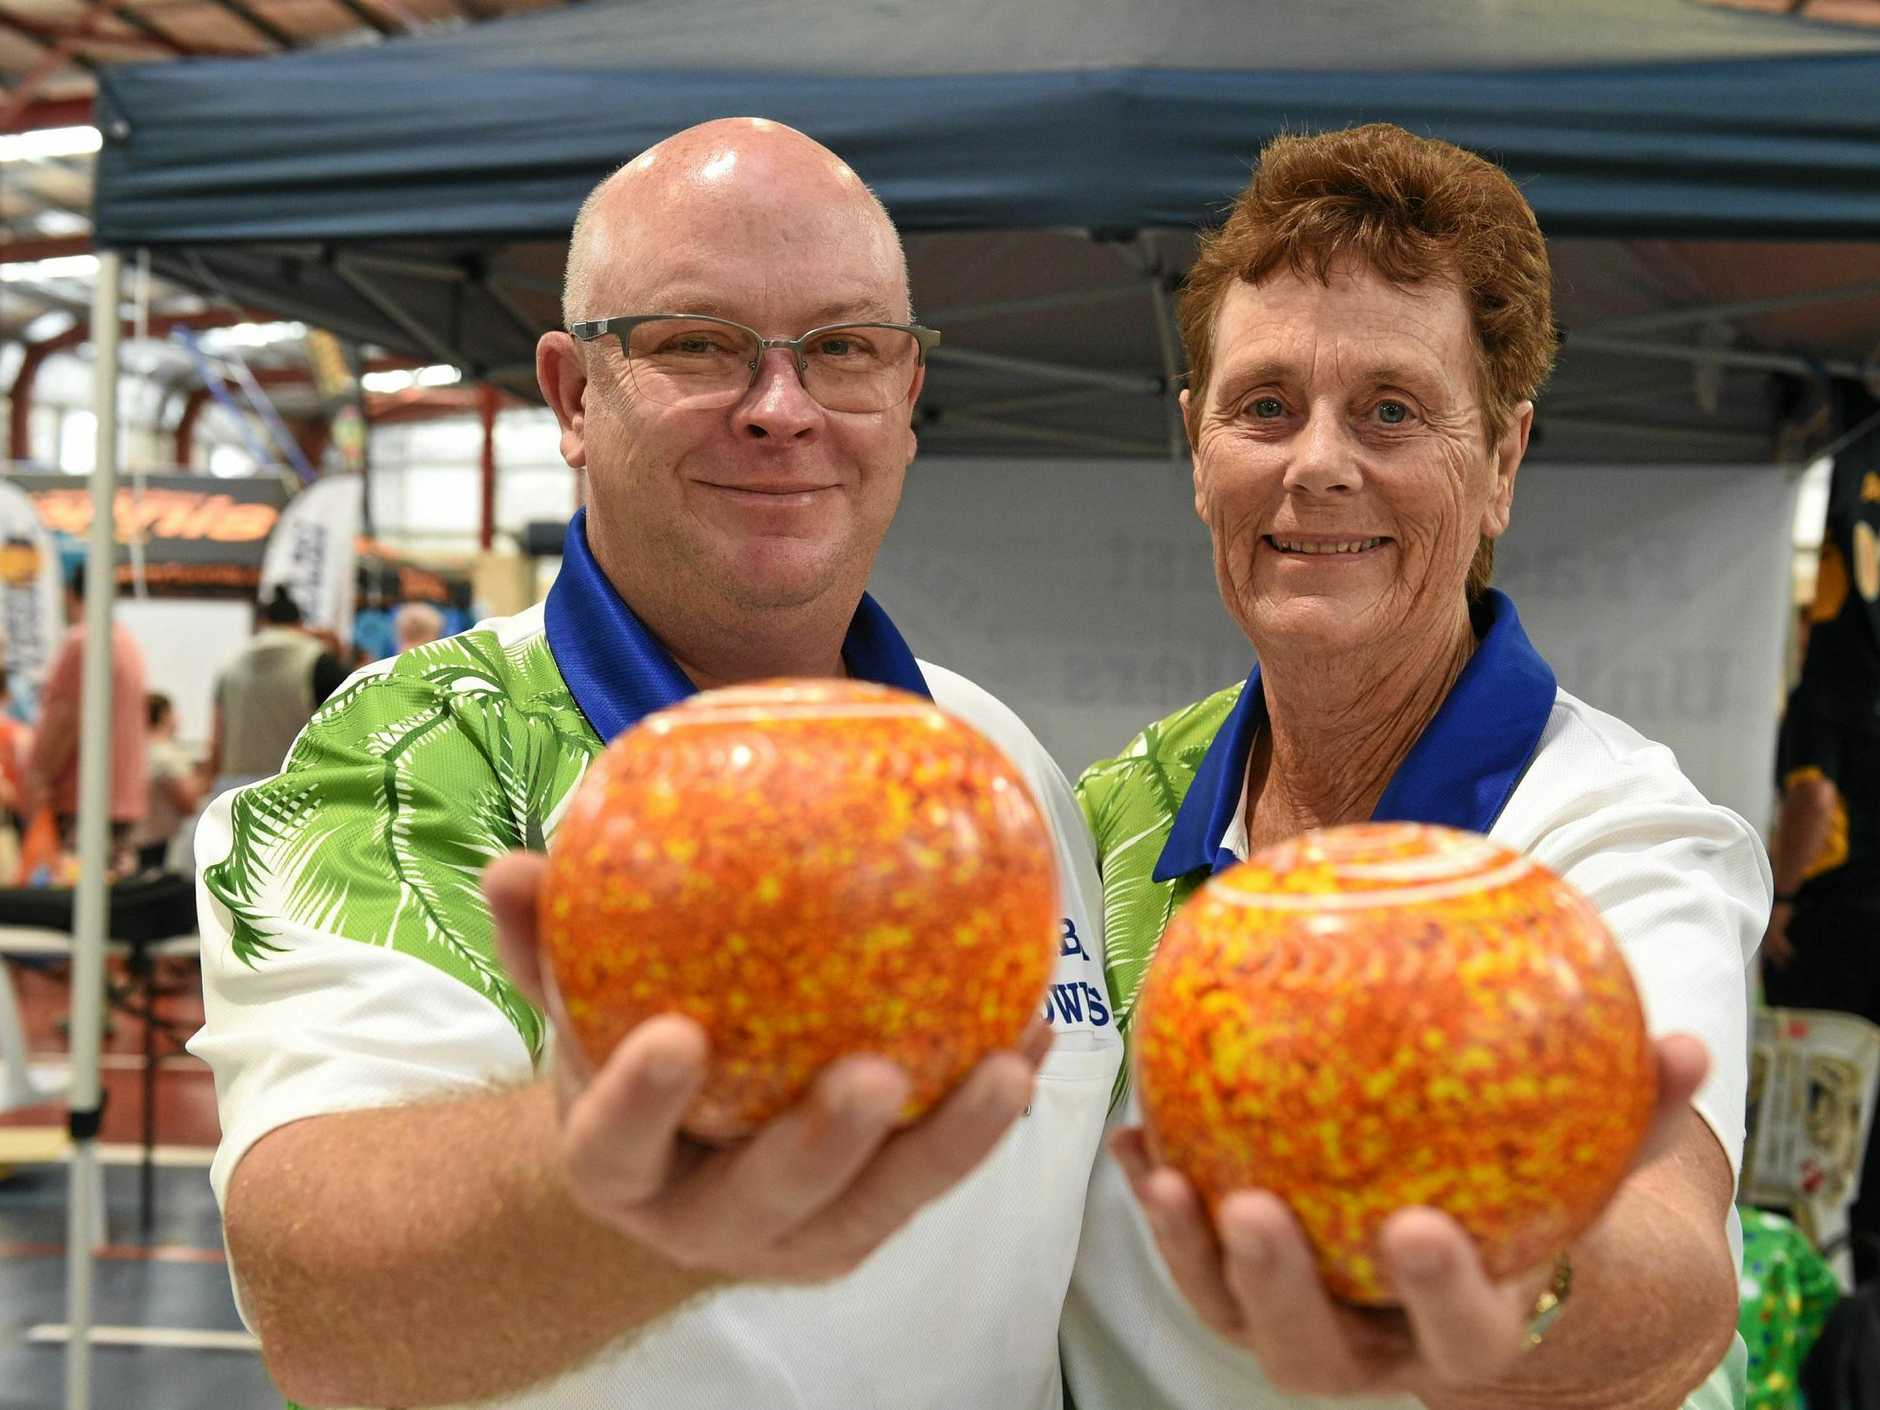 Sports Plus Expo at Hervey Bay PCYC - Brian Reckenberg and Lesley Brooks from Pialba Bowls Club.